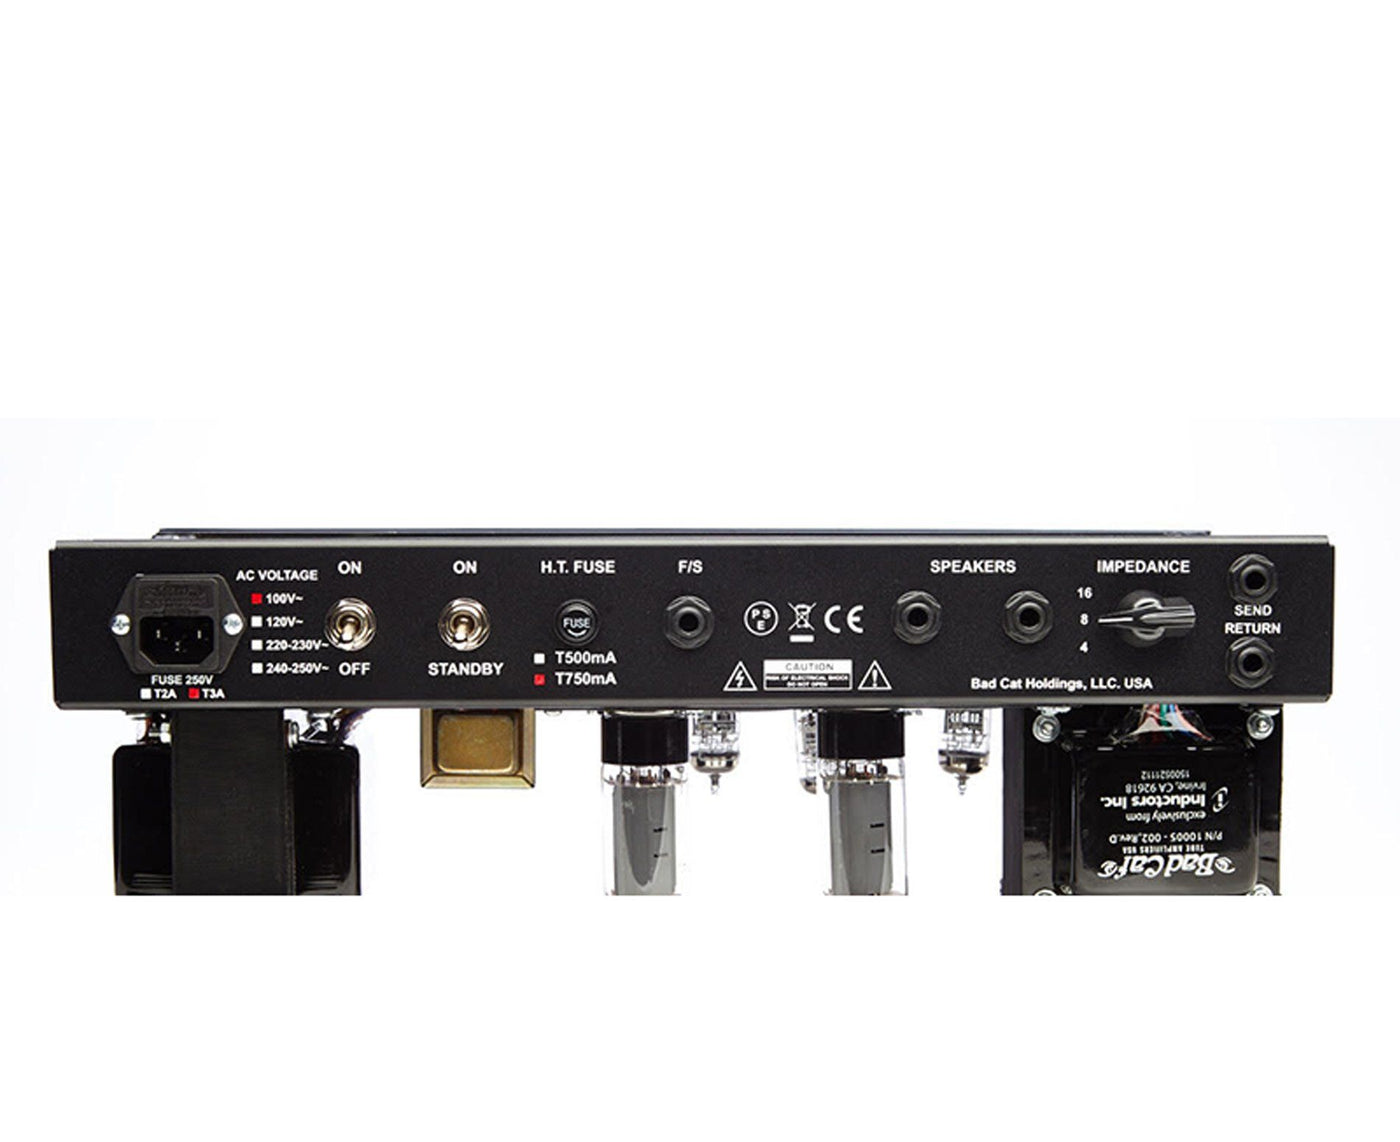 Bad Cat Amps Cub 40R USA Player Series Amplifier Head